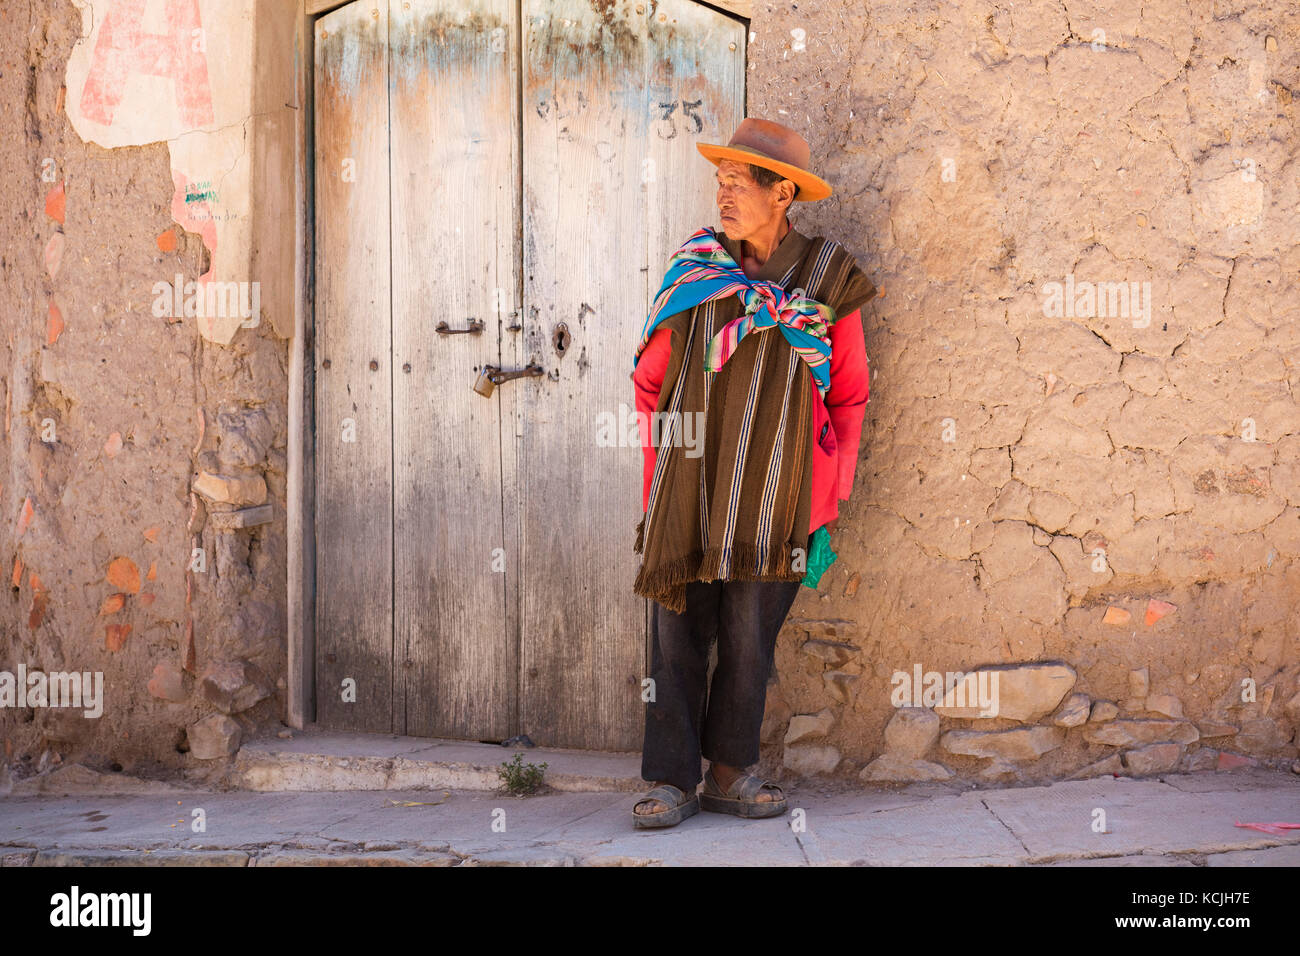 Elderly Bolivian man with hat wearing traditional poncho in the town Tarabuco, Chuquisaca, Yamparáez Province, - Stock Image